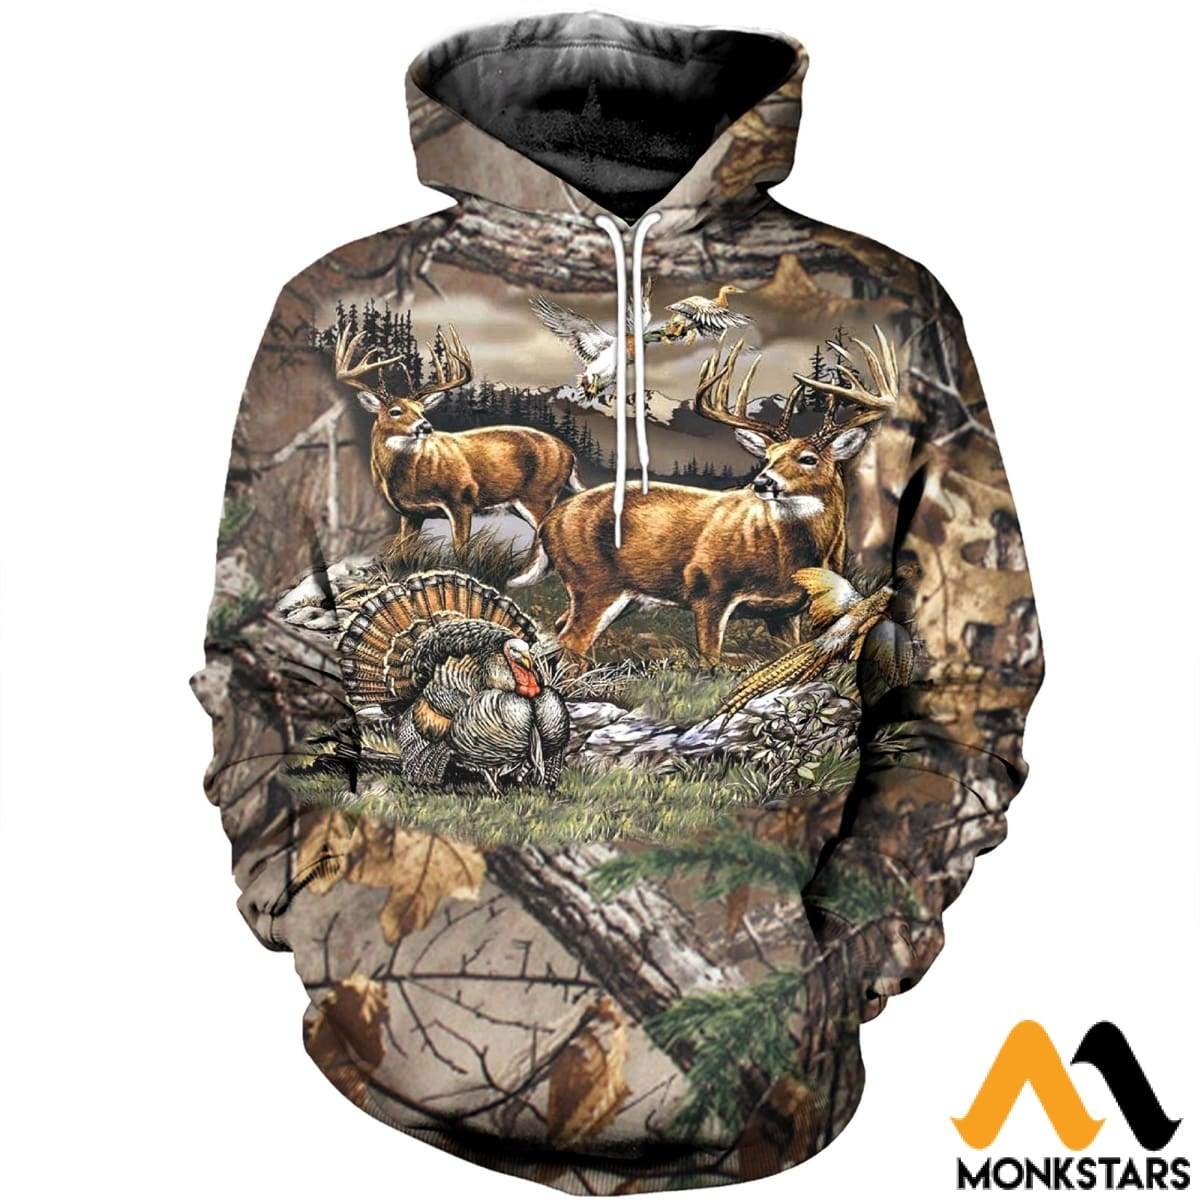 6ac52b56dee9 3D All Over Printed Hunting Clothes - Monkstars Inc.